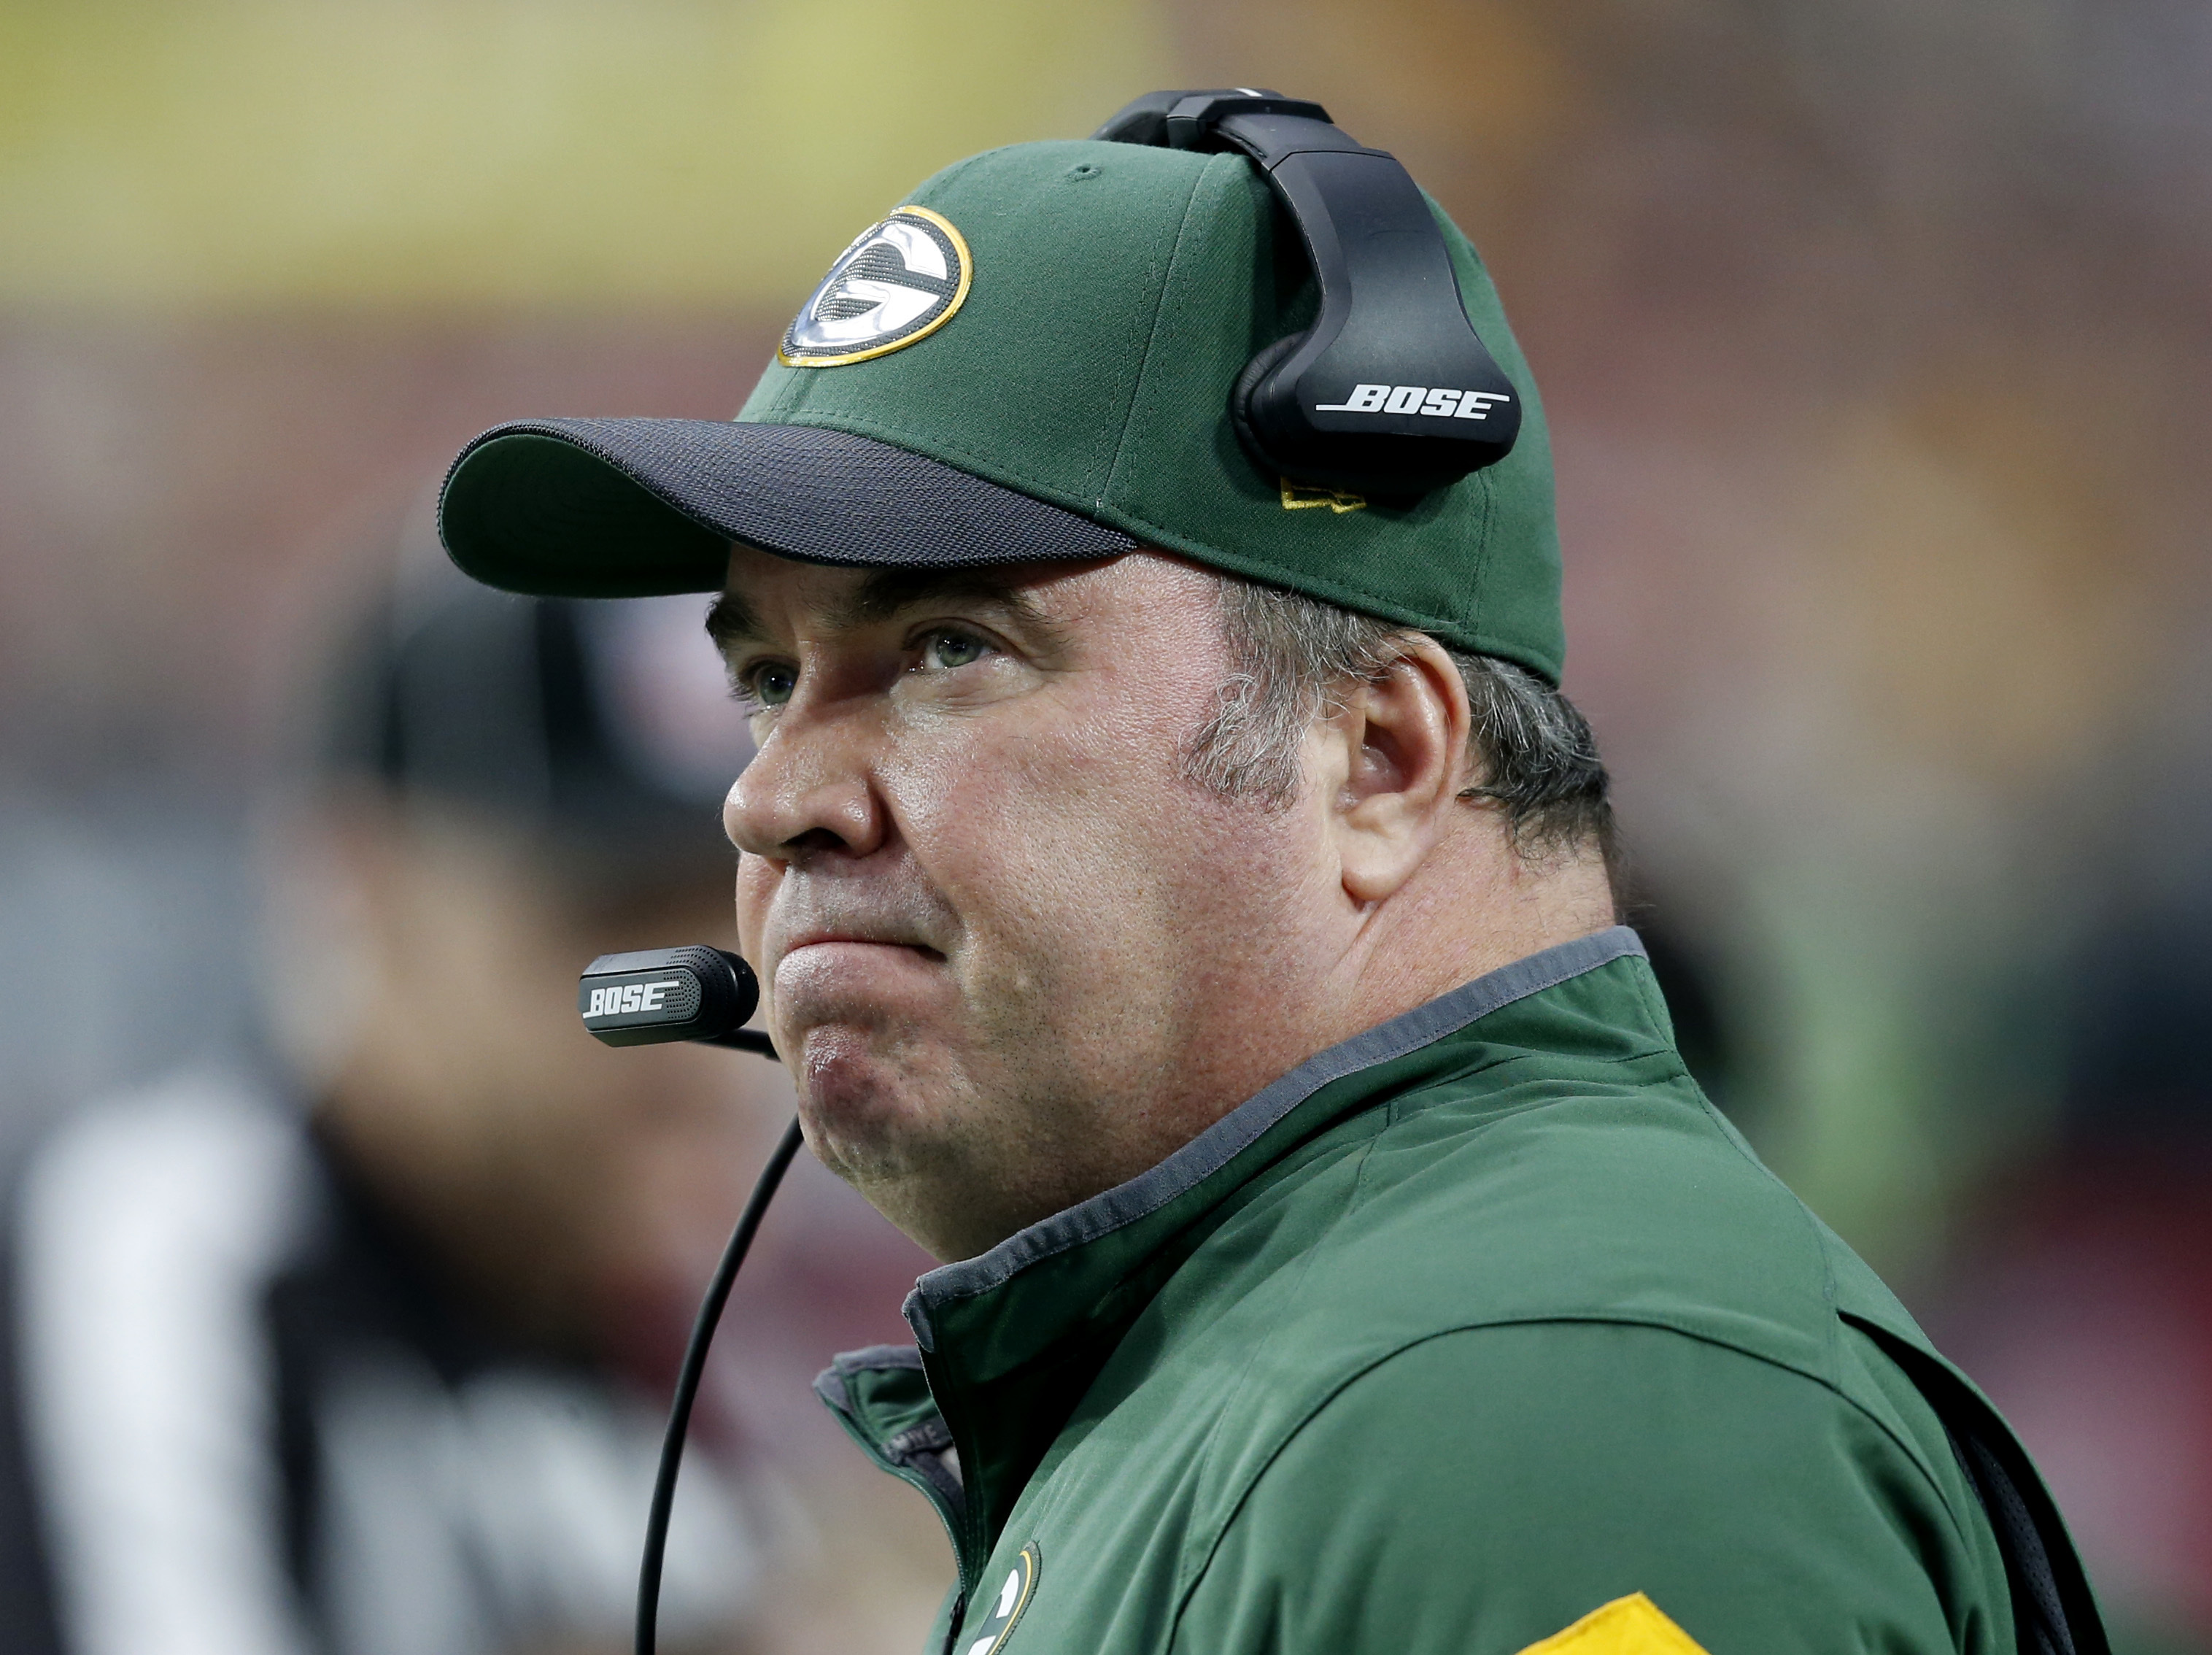 FILE - In this Dec. 27, 2015, file photo, Green Bay Packers head coach Mike McCarthy watches his team during the first half of an NFL football game against the Arizona Cardinals in Glendale, Ariz. Winning the division is important in Green Bay, but the Pa